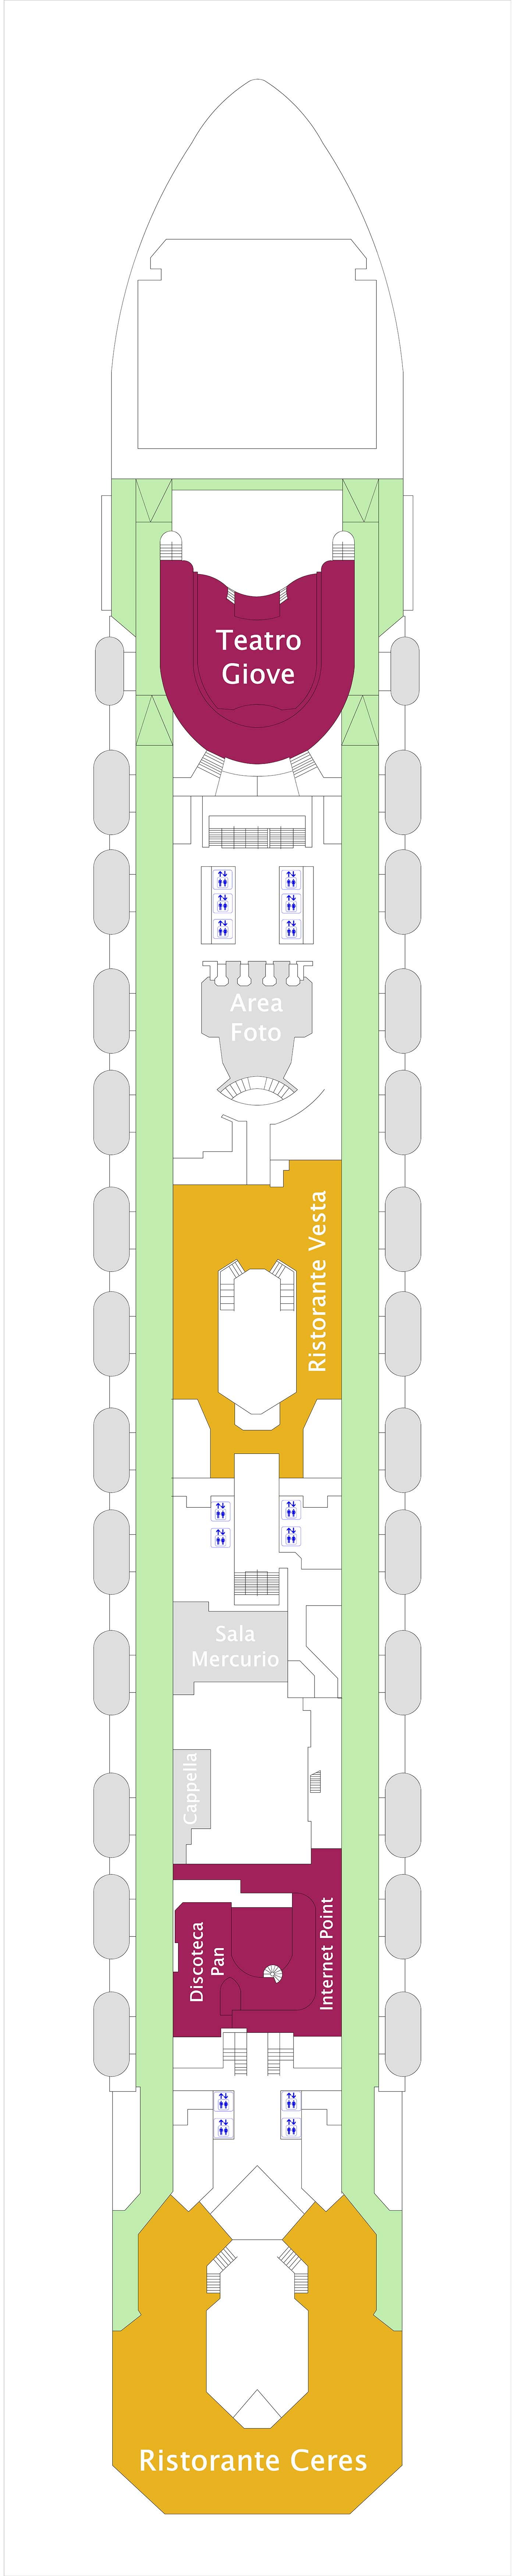 Costa Serena deck plan 4